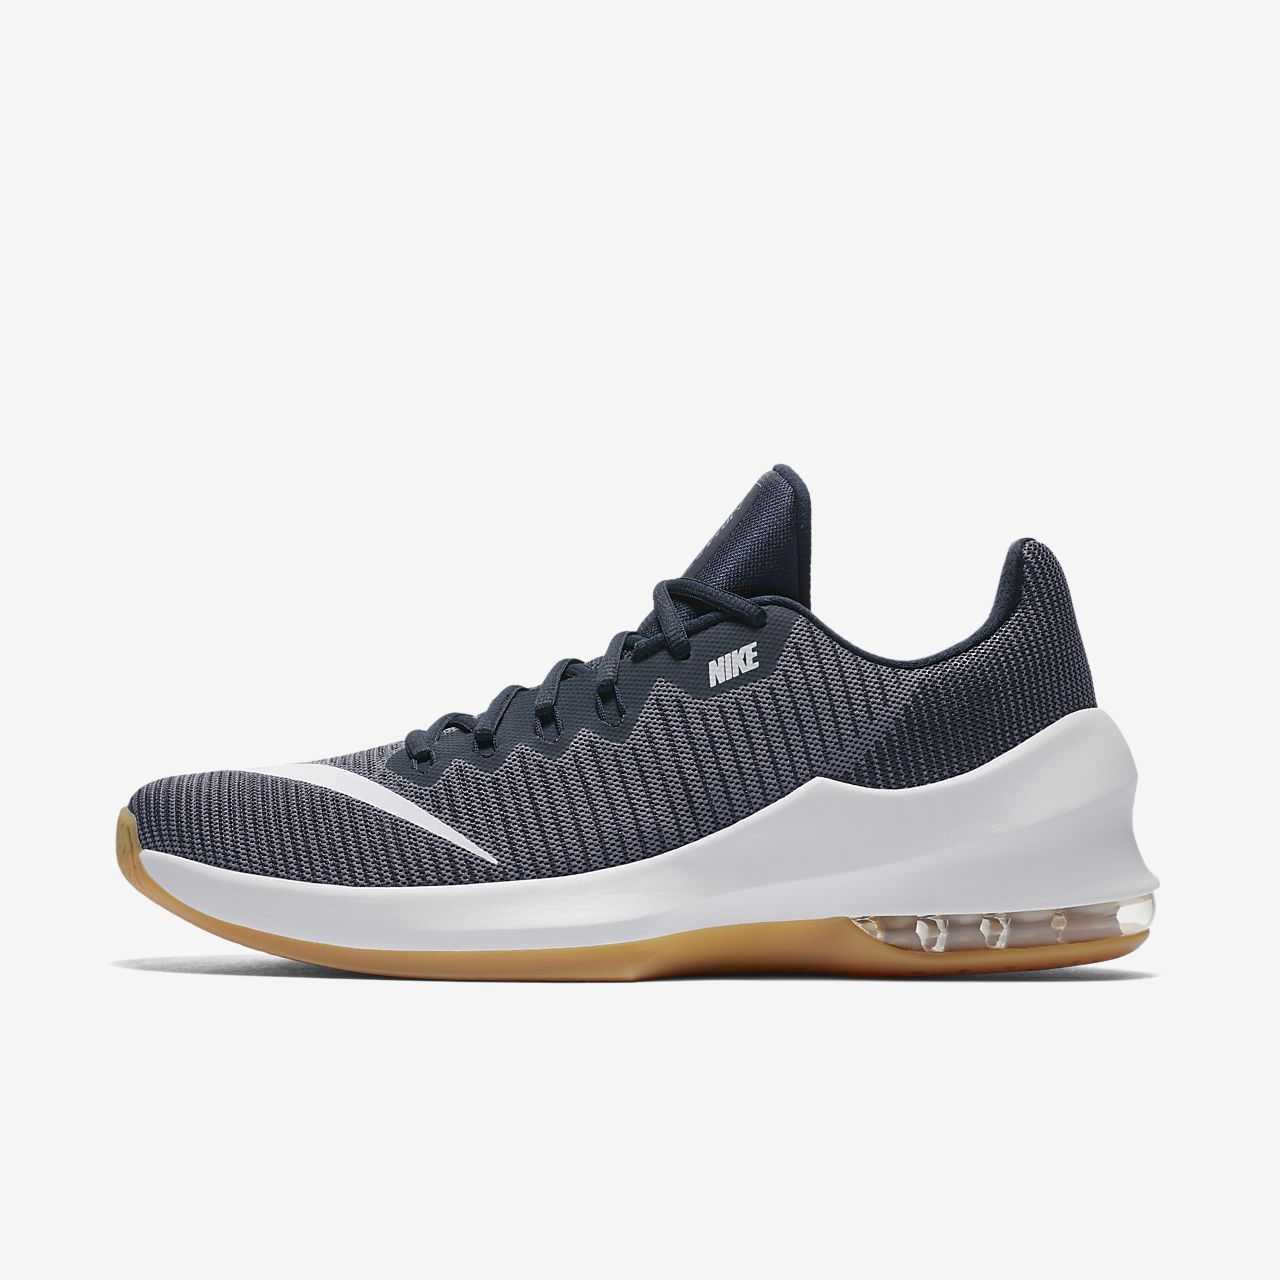 Nike Air Max Infuriate 2 Low Homme Basketball Shoe 11.5 | Top